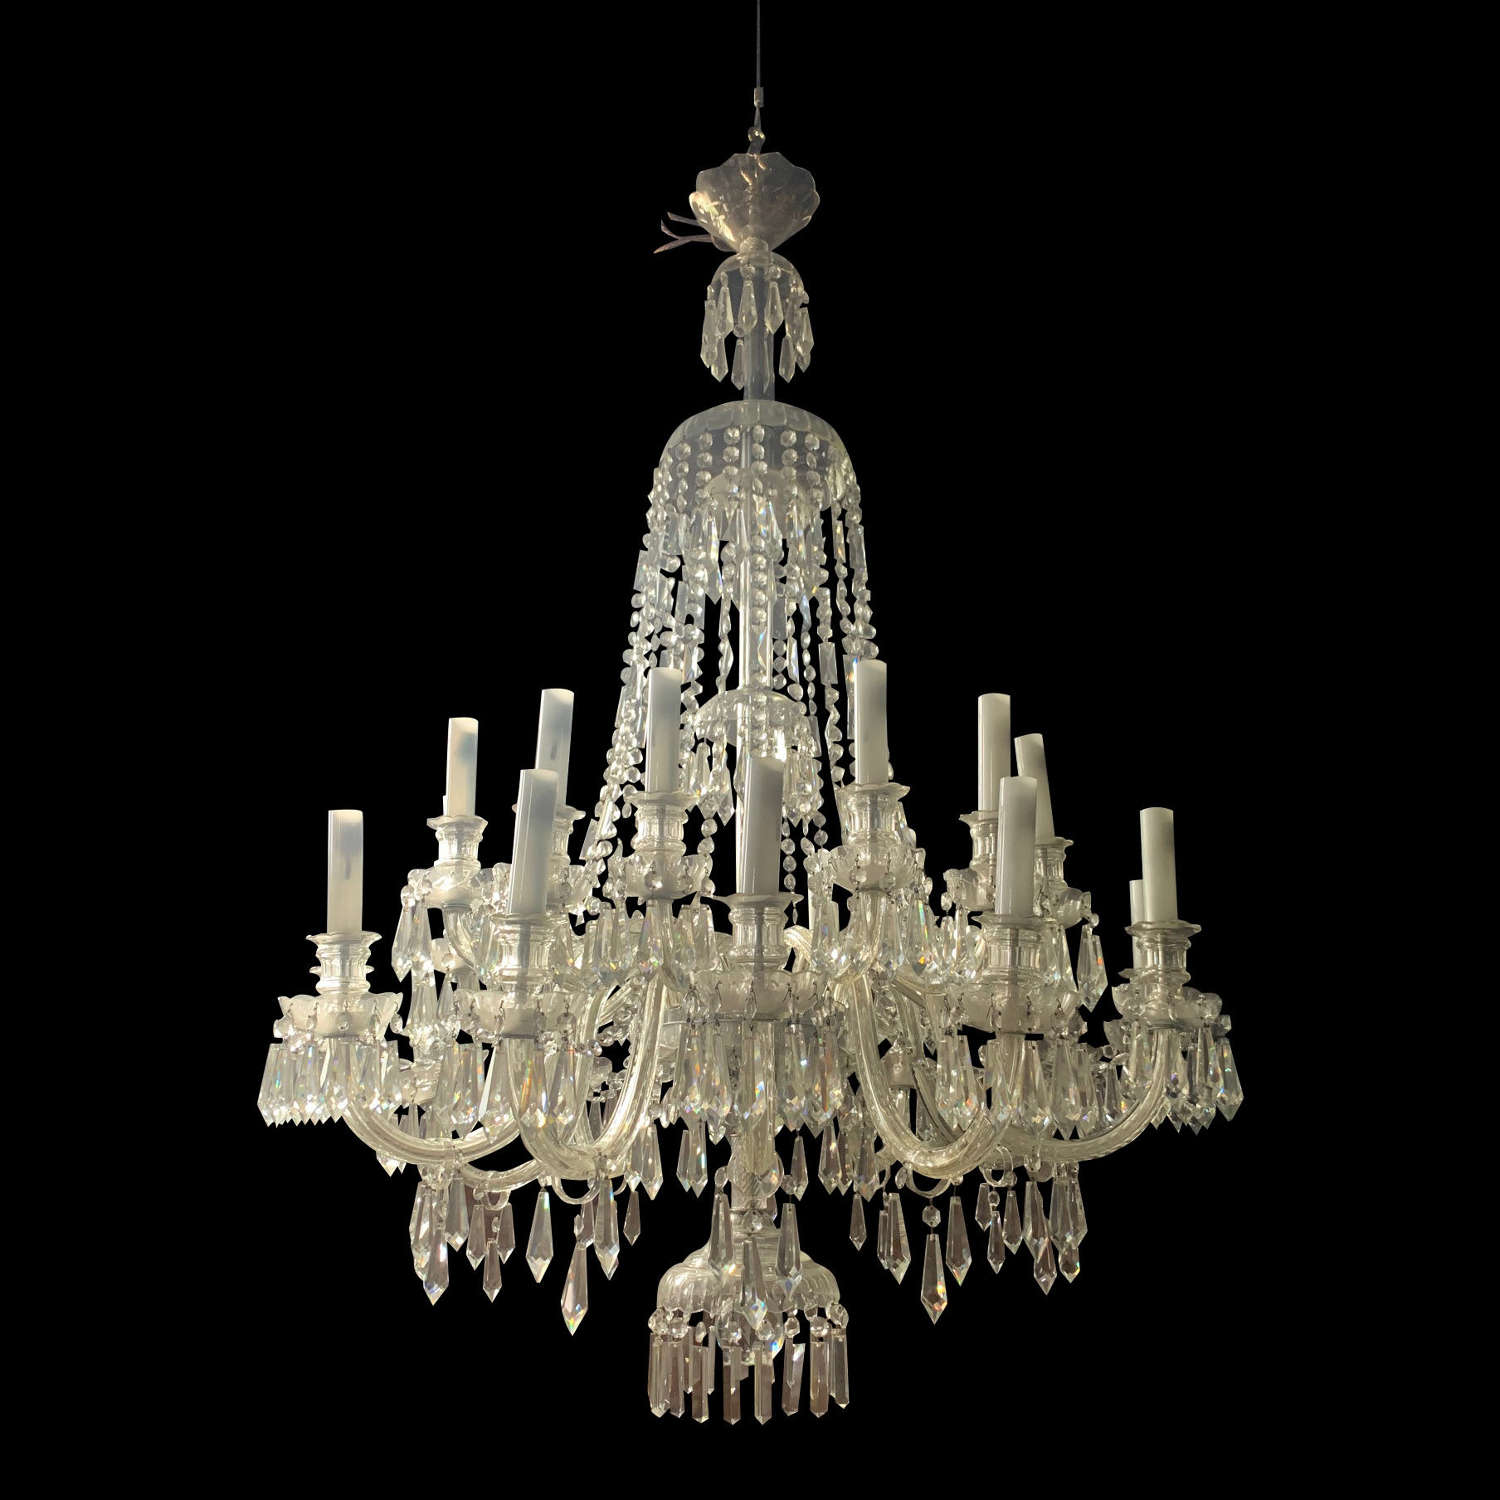 LARGE 20th CENTURY 26 ARM GLASS CHANDELIER